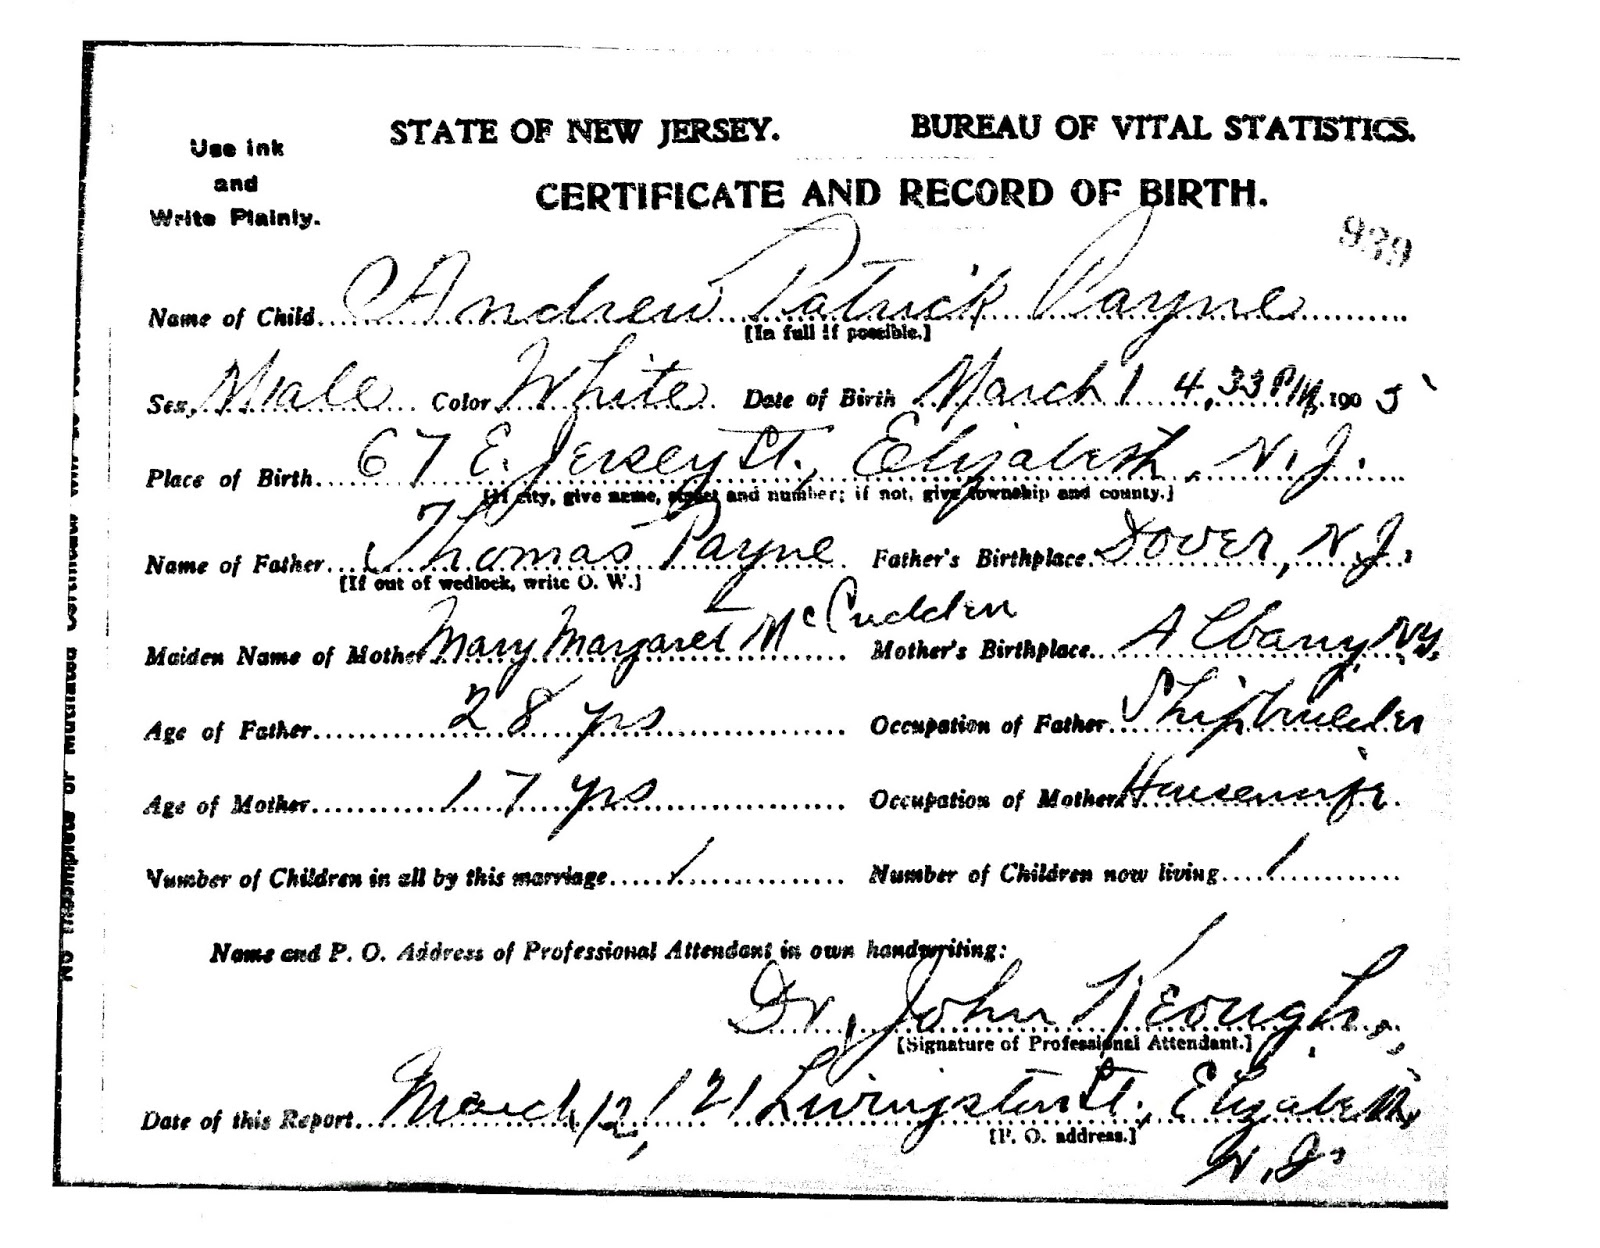 Rooted in elizabeth 2016 birth certificate for andrew patrick payne 1 march 1905 new jersey state archives trenton aiddatafo Images